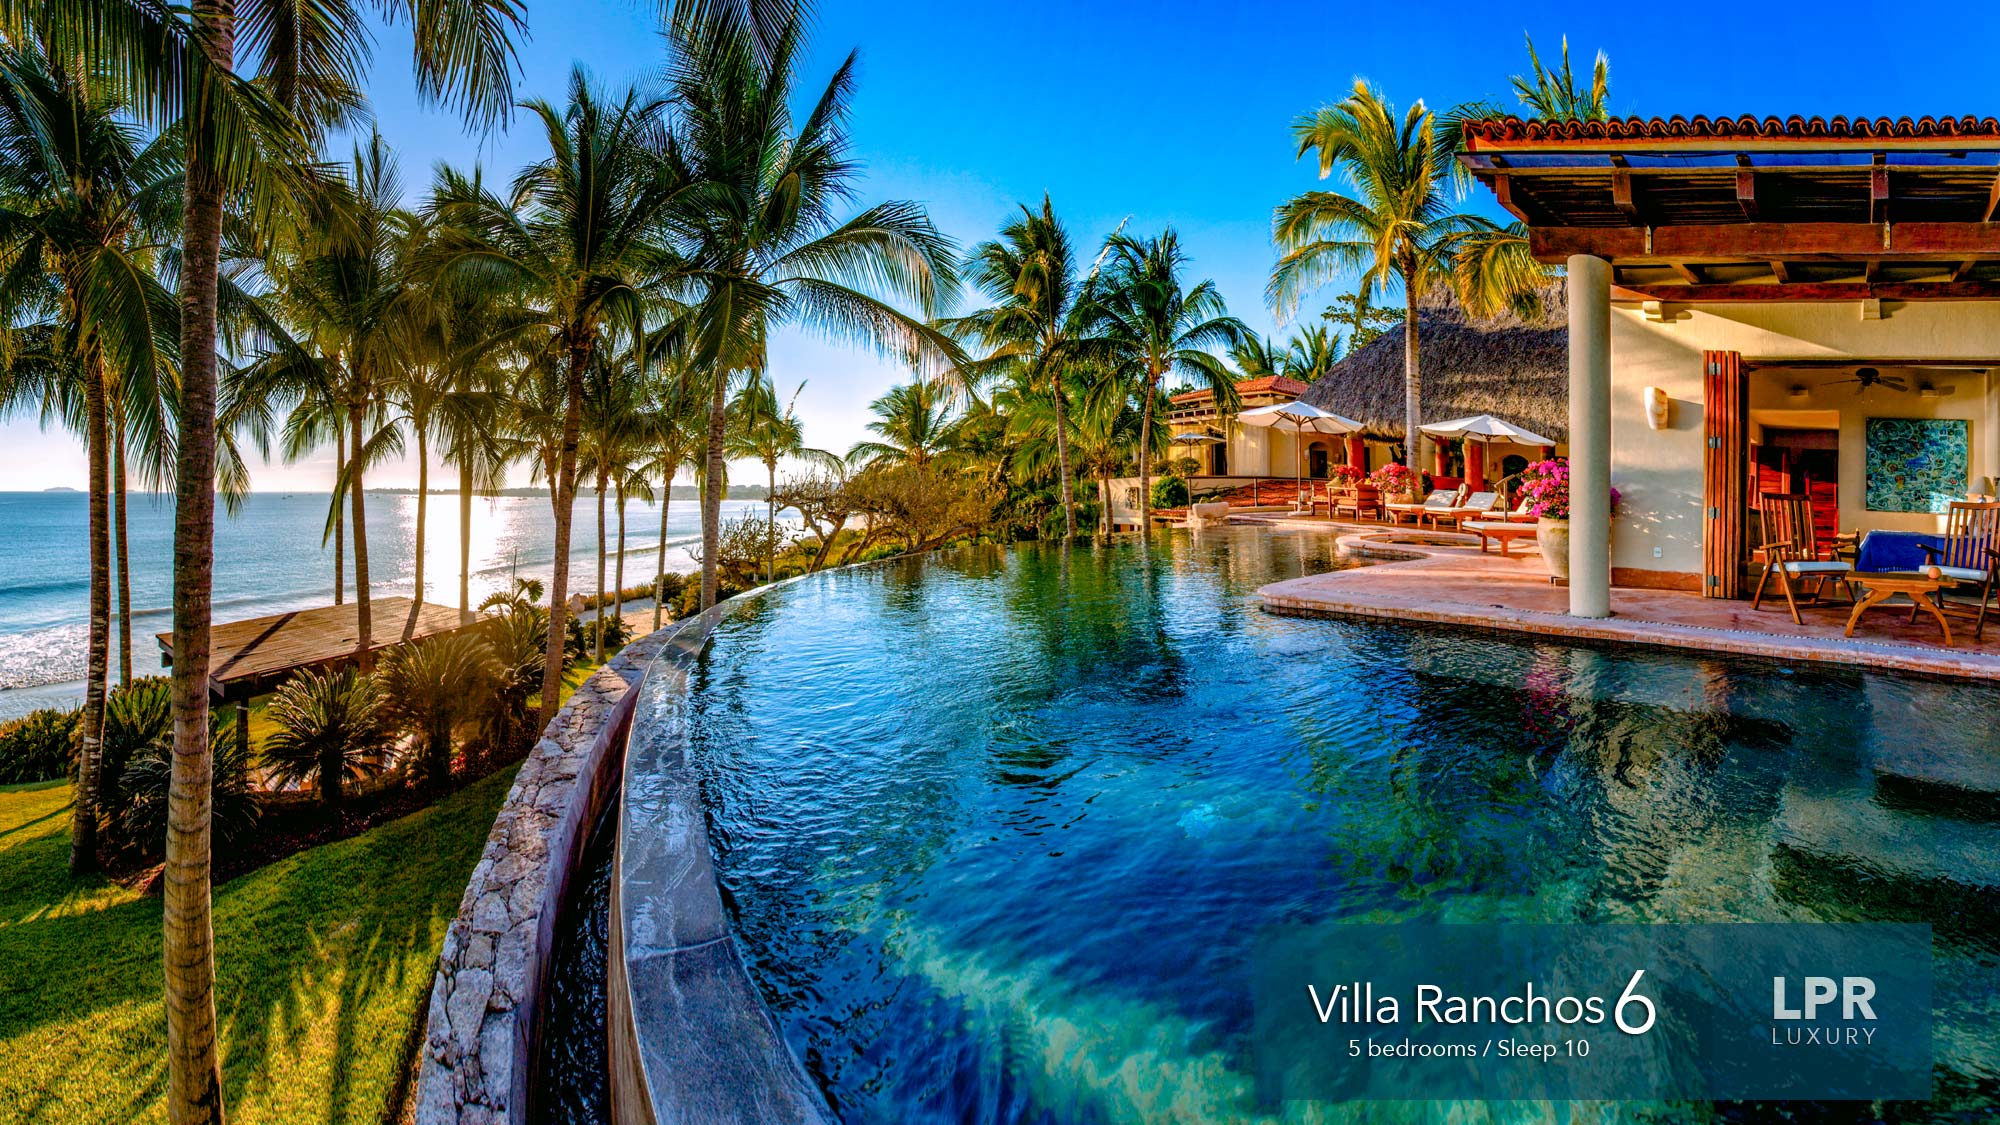 Villa Ranchos 6 - Punta Mita Resort - Luxury Vacation Rentals